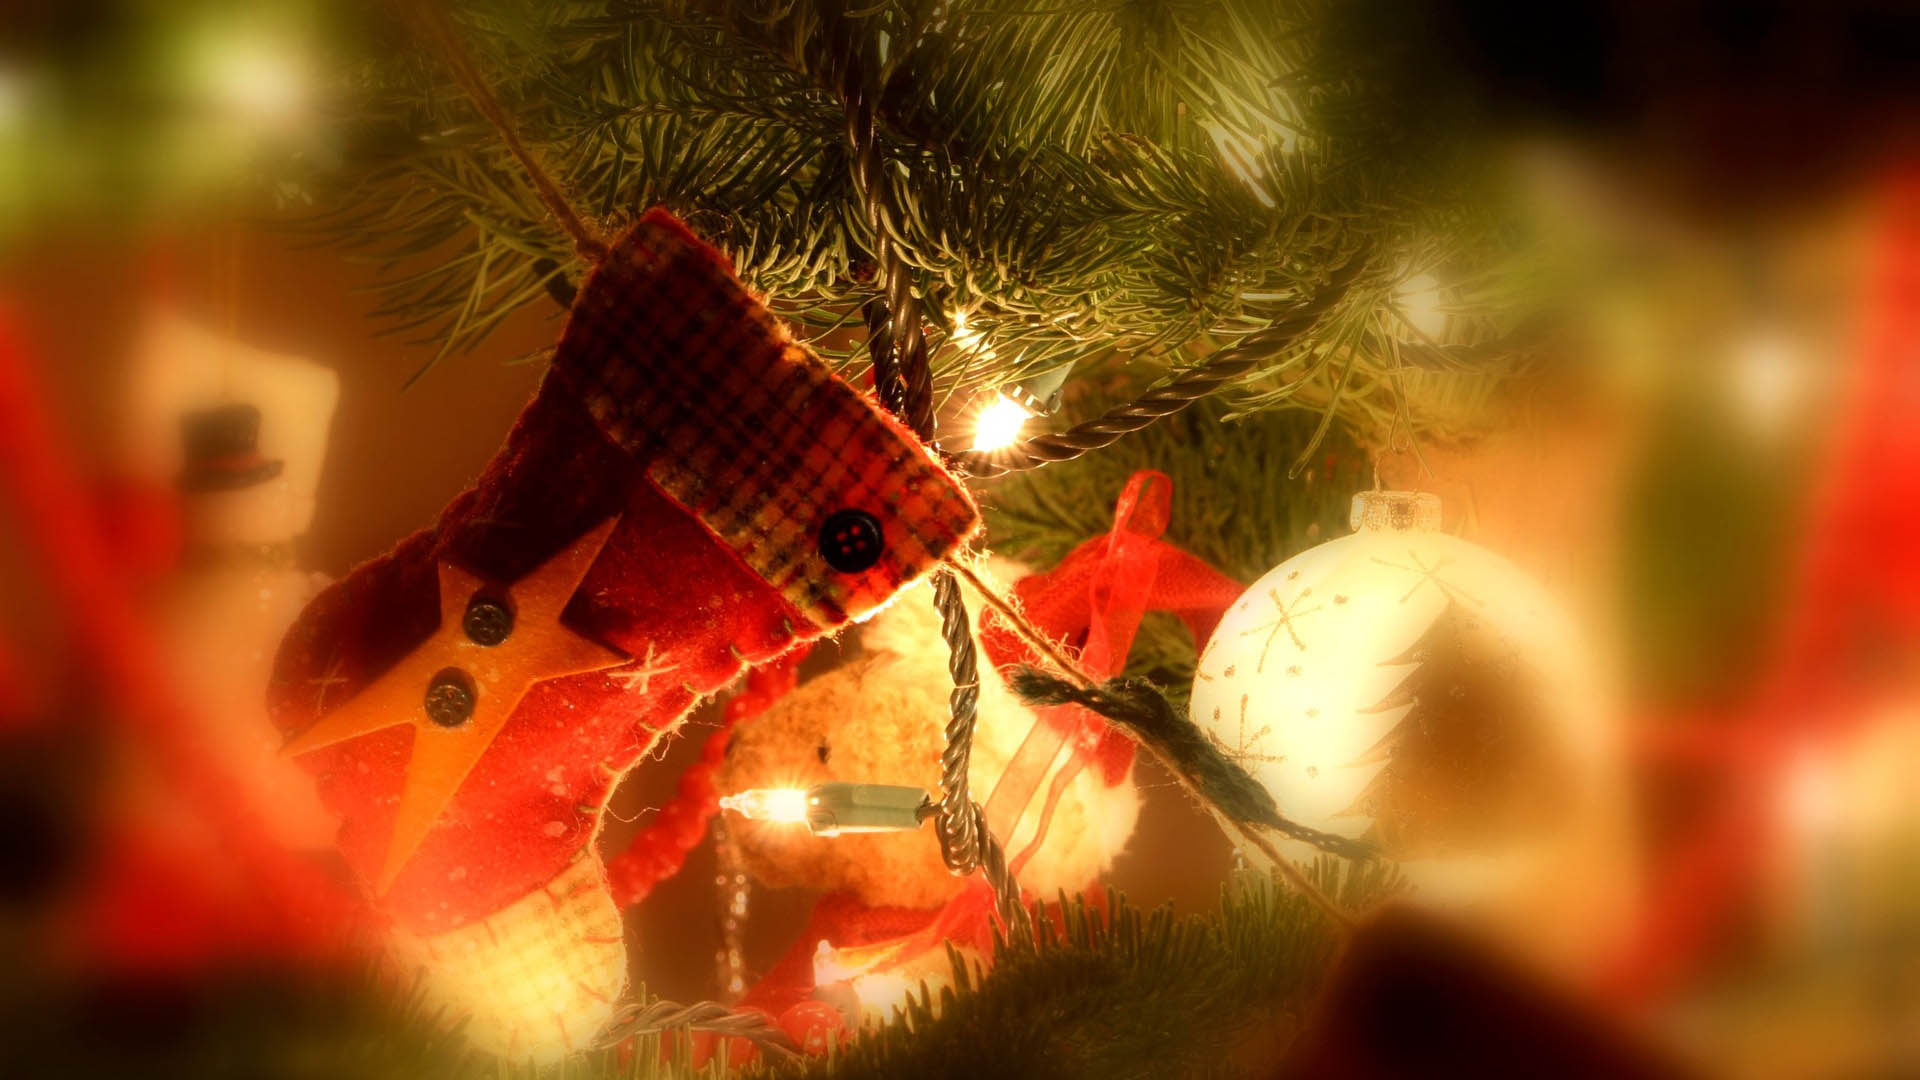 Christmas_Wallpapers_HD_decorations_cards_pictures_-_1920x1080_-_0145